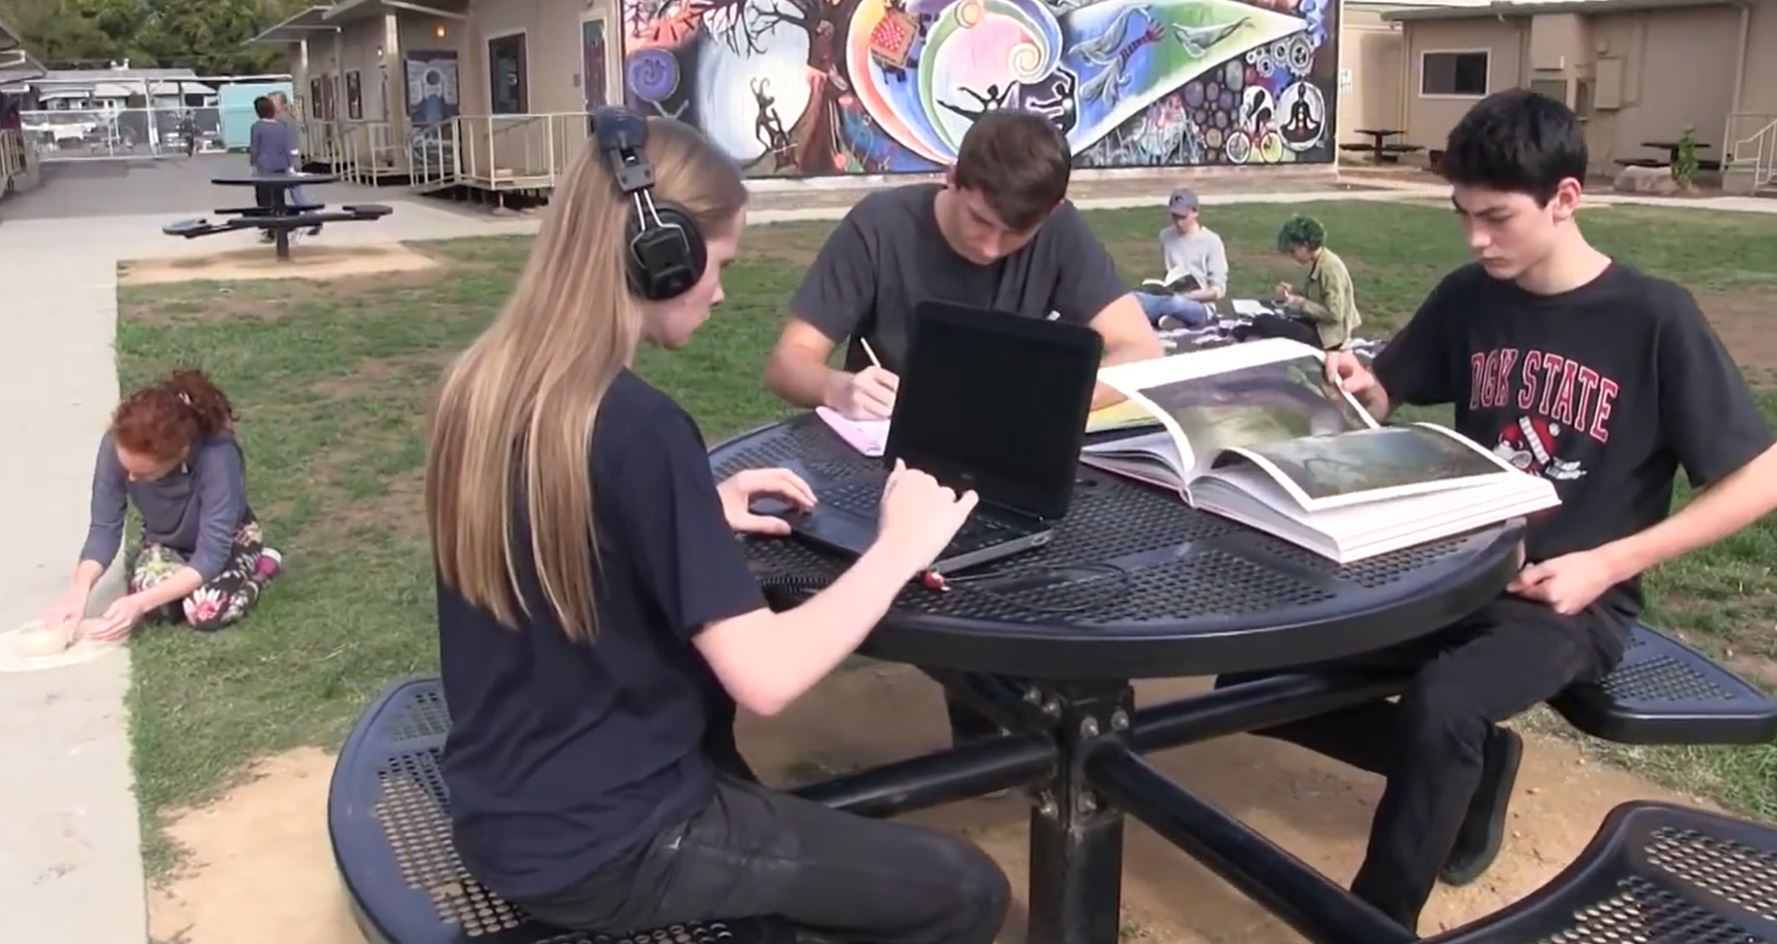 Student working on a computer with earphones on